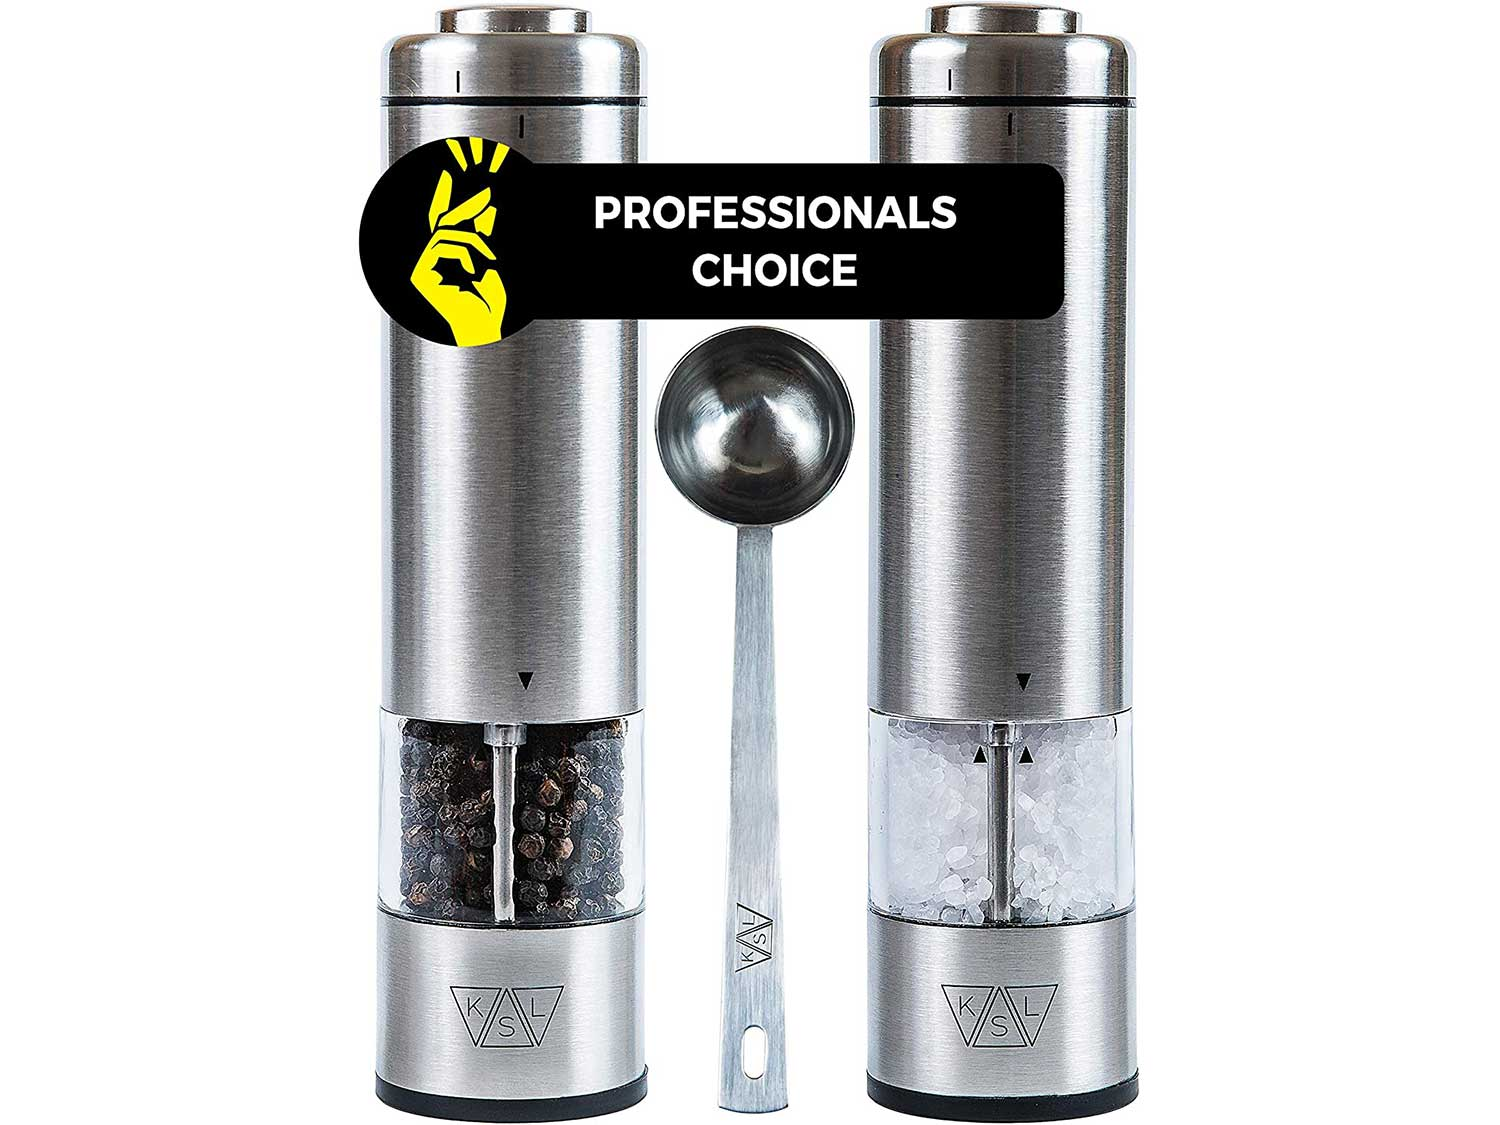 KSL Electric Salt and Pepper Grinder Set (Batteries included) - Automatic Adjustable Shakers - Stainless Steel Powered Spice Mills - Battery Operated Kitchen Peppermills w/Light - Housewarming Gift